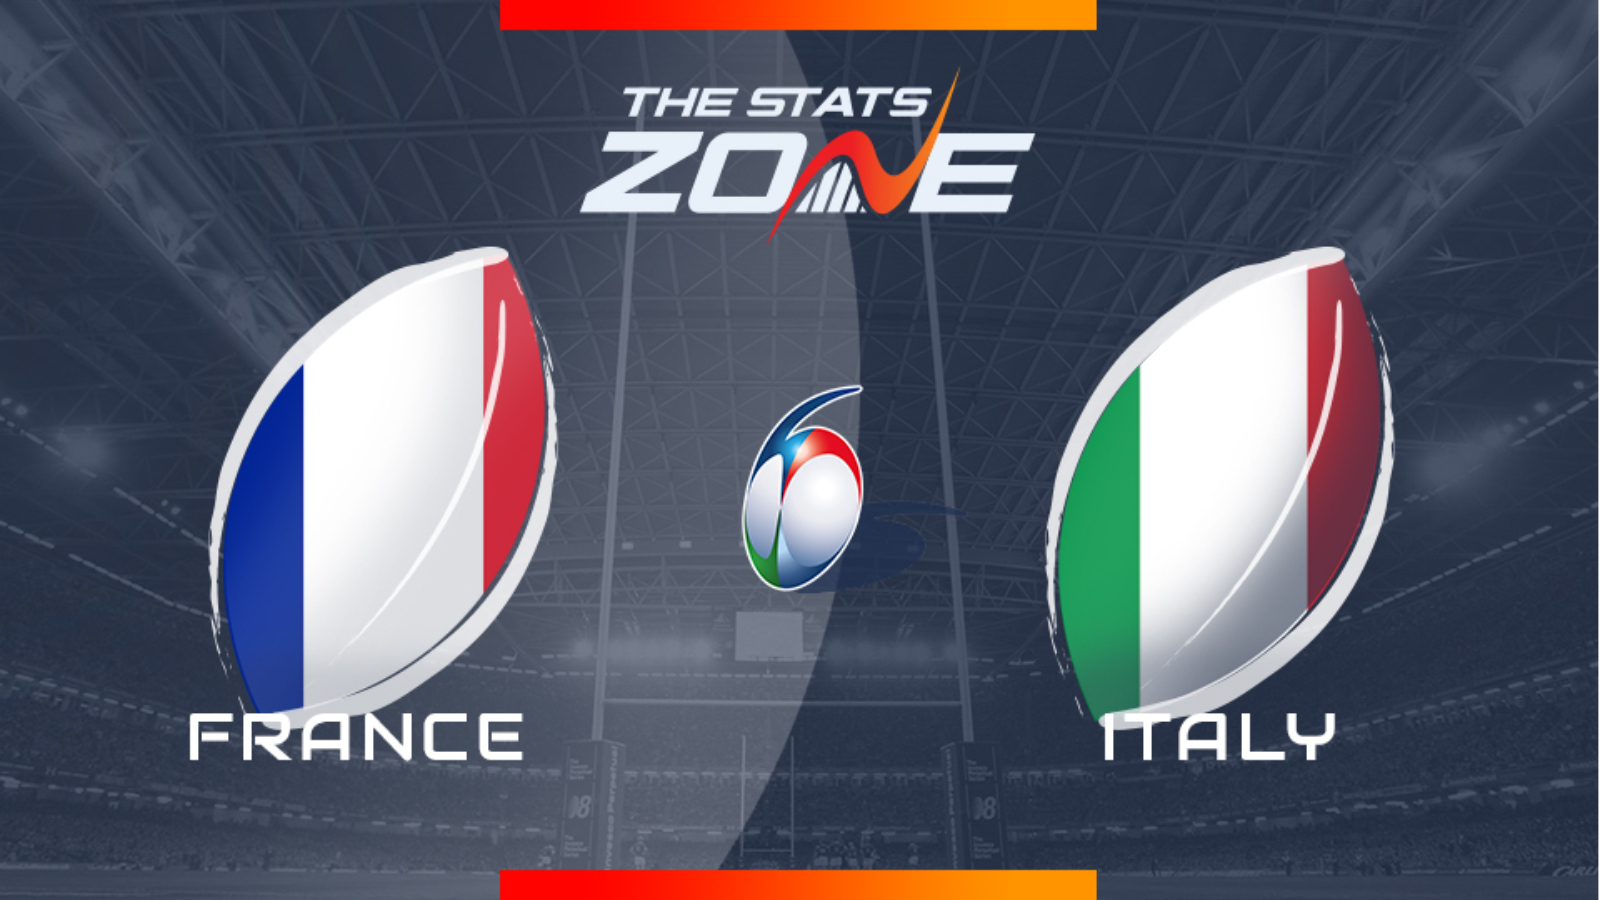 France v italy betting preview ht ft betting system